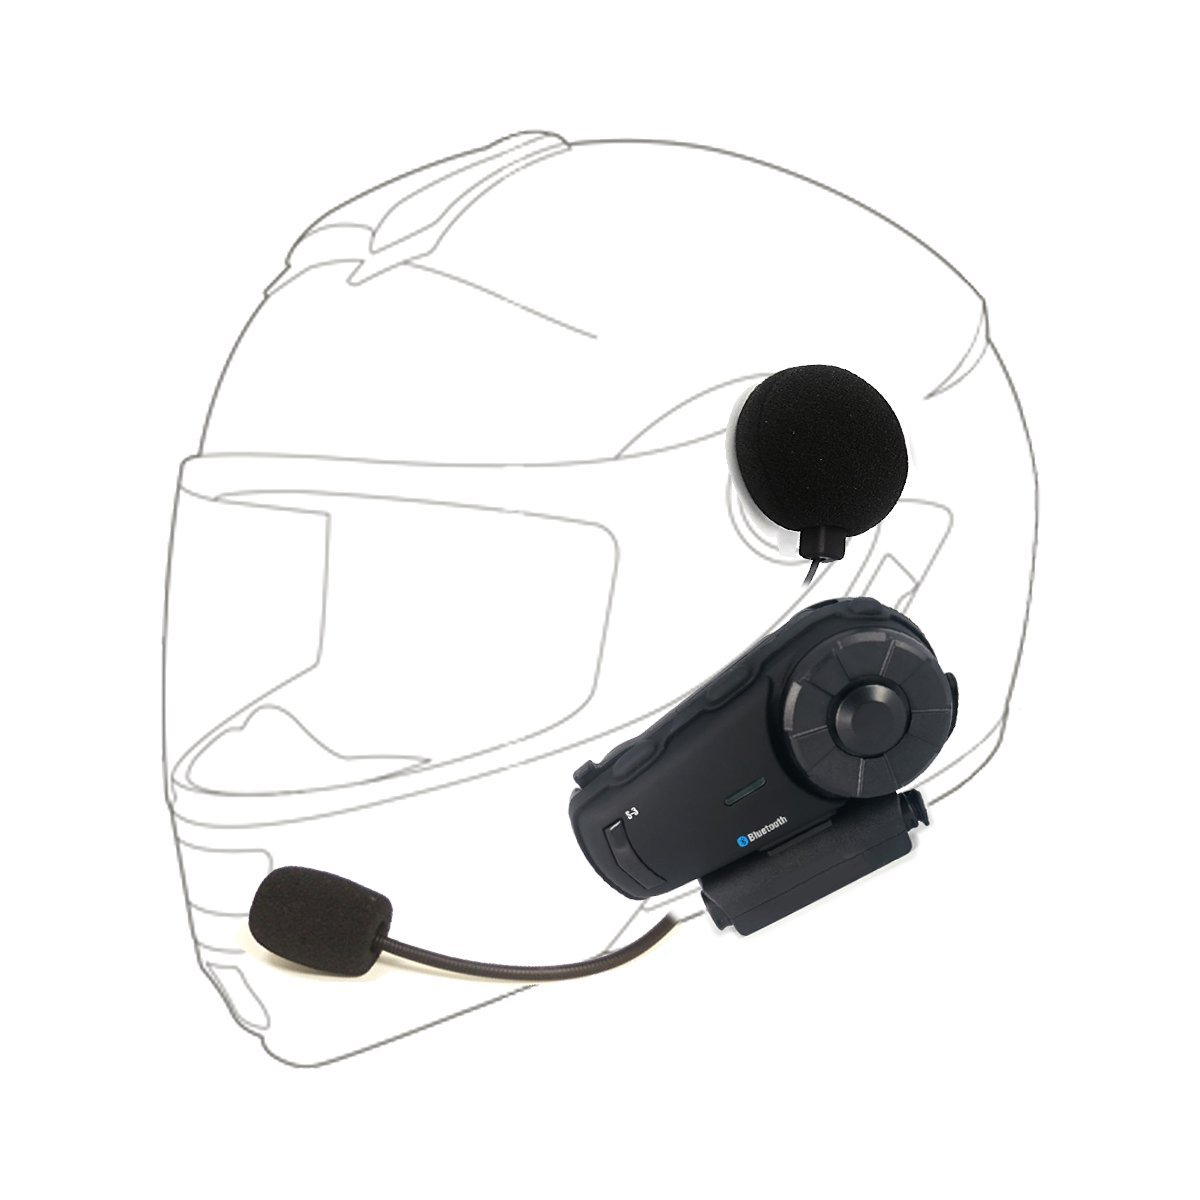 Sykik Rider SRS3 Bluetooth and extra long range intercom unit for up to 10 riders. One year Sykik Warranty. by Sykik